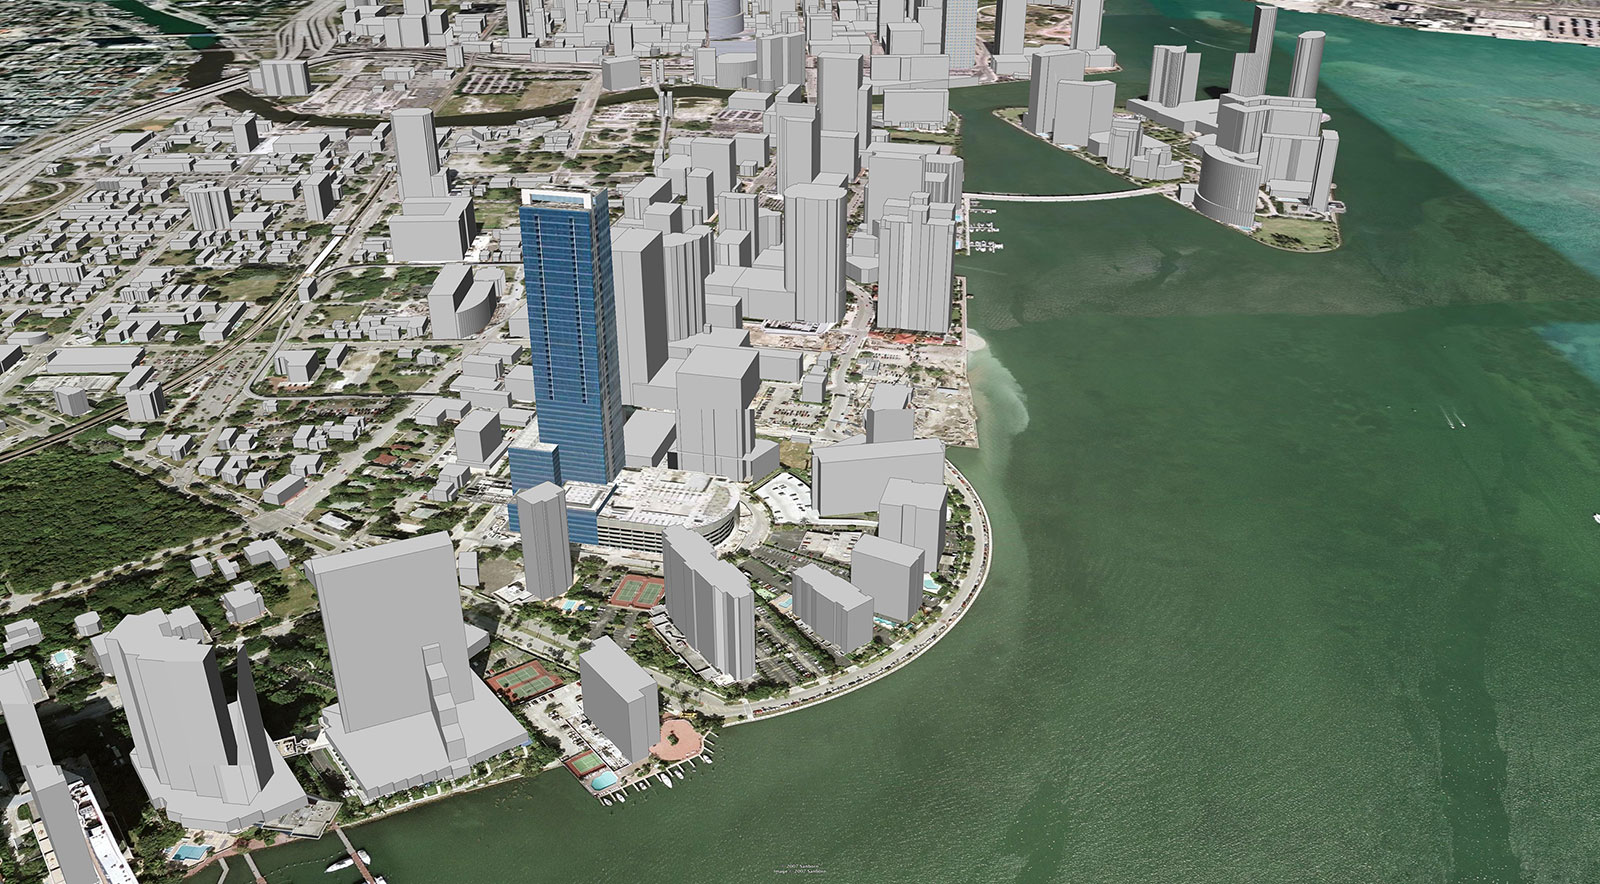 """Image that shows the """"existing"""" conditions on the Miami city coastline. Photo Credit: ©2007 Google, Inc."""